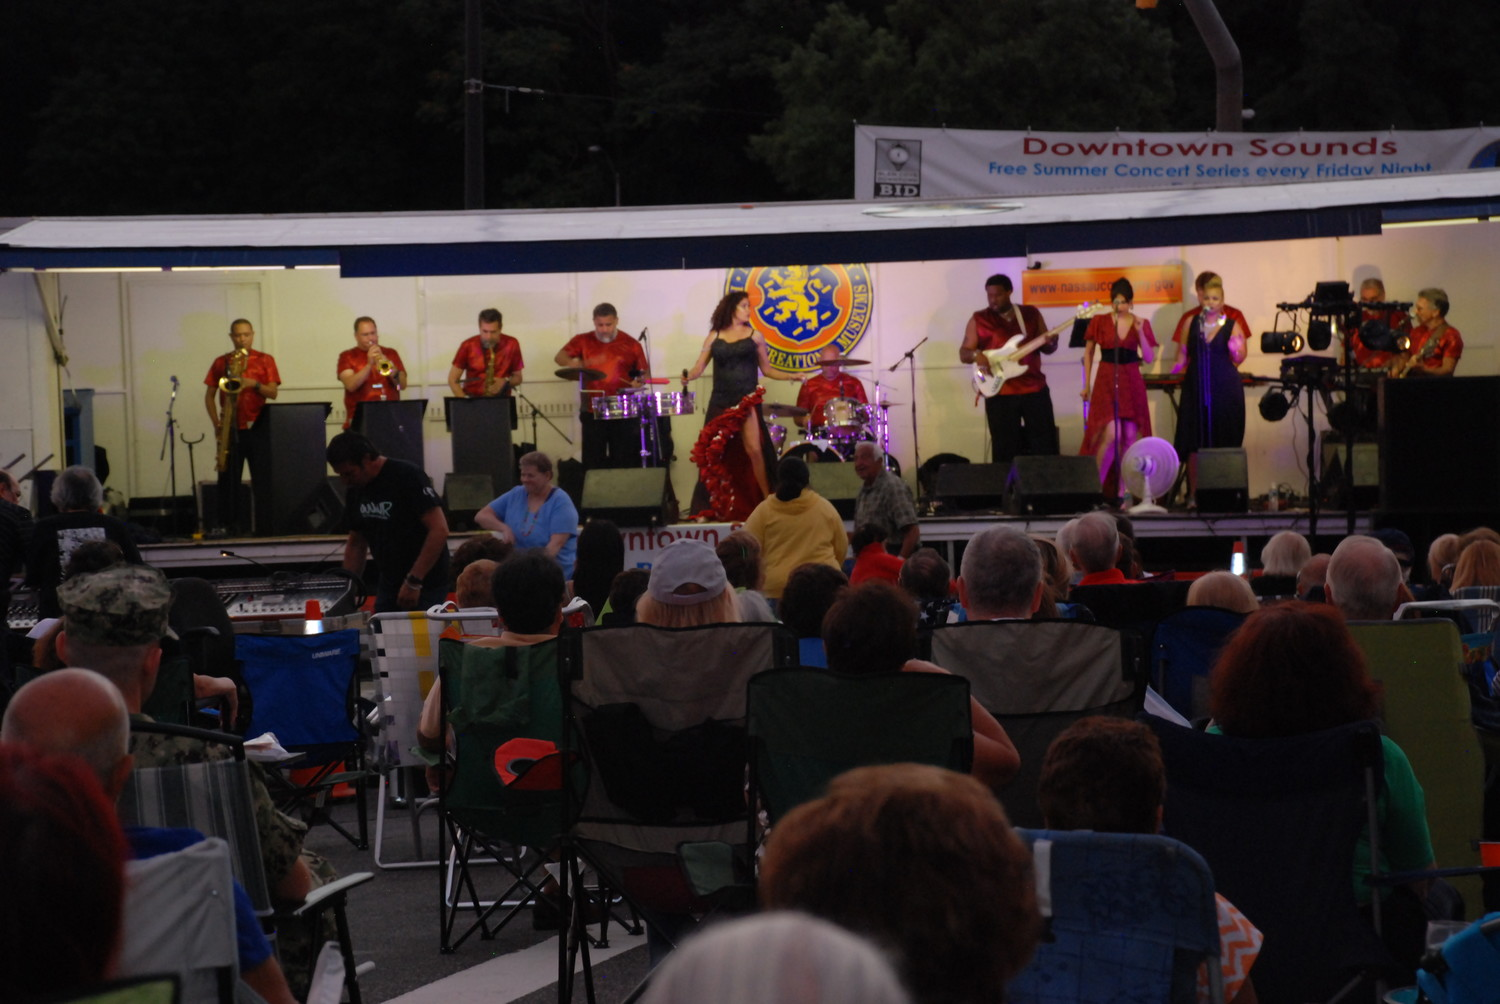 More than 100 people attended the first show in the Downtown Sounds concert series, crowding School Street and Glen Street with lawn chairs, far left.